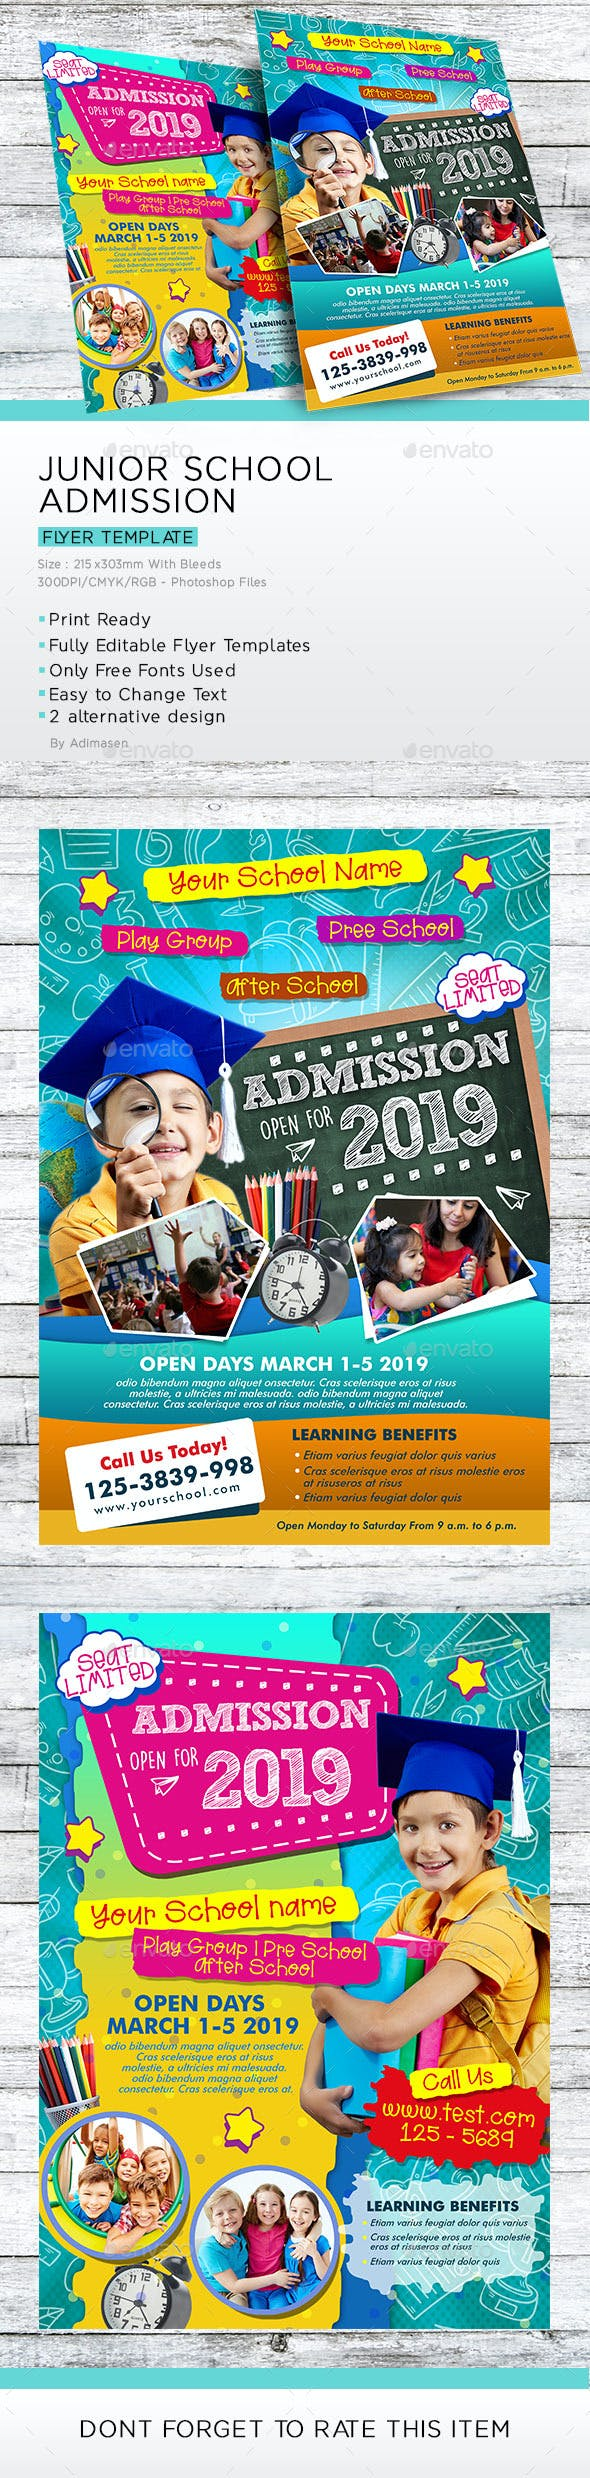 Junior School Admission Flyer